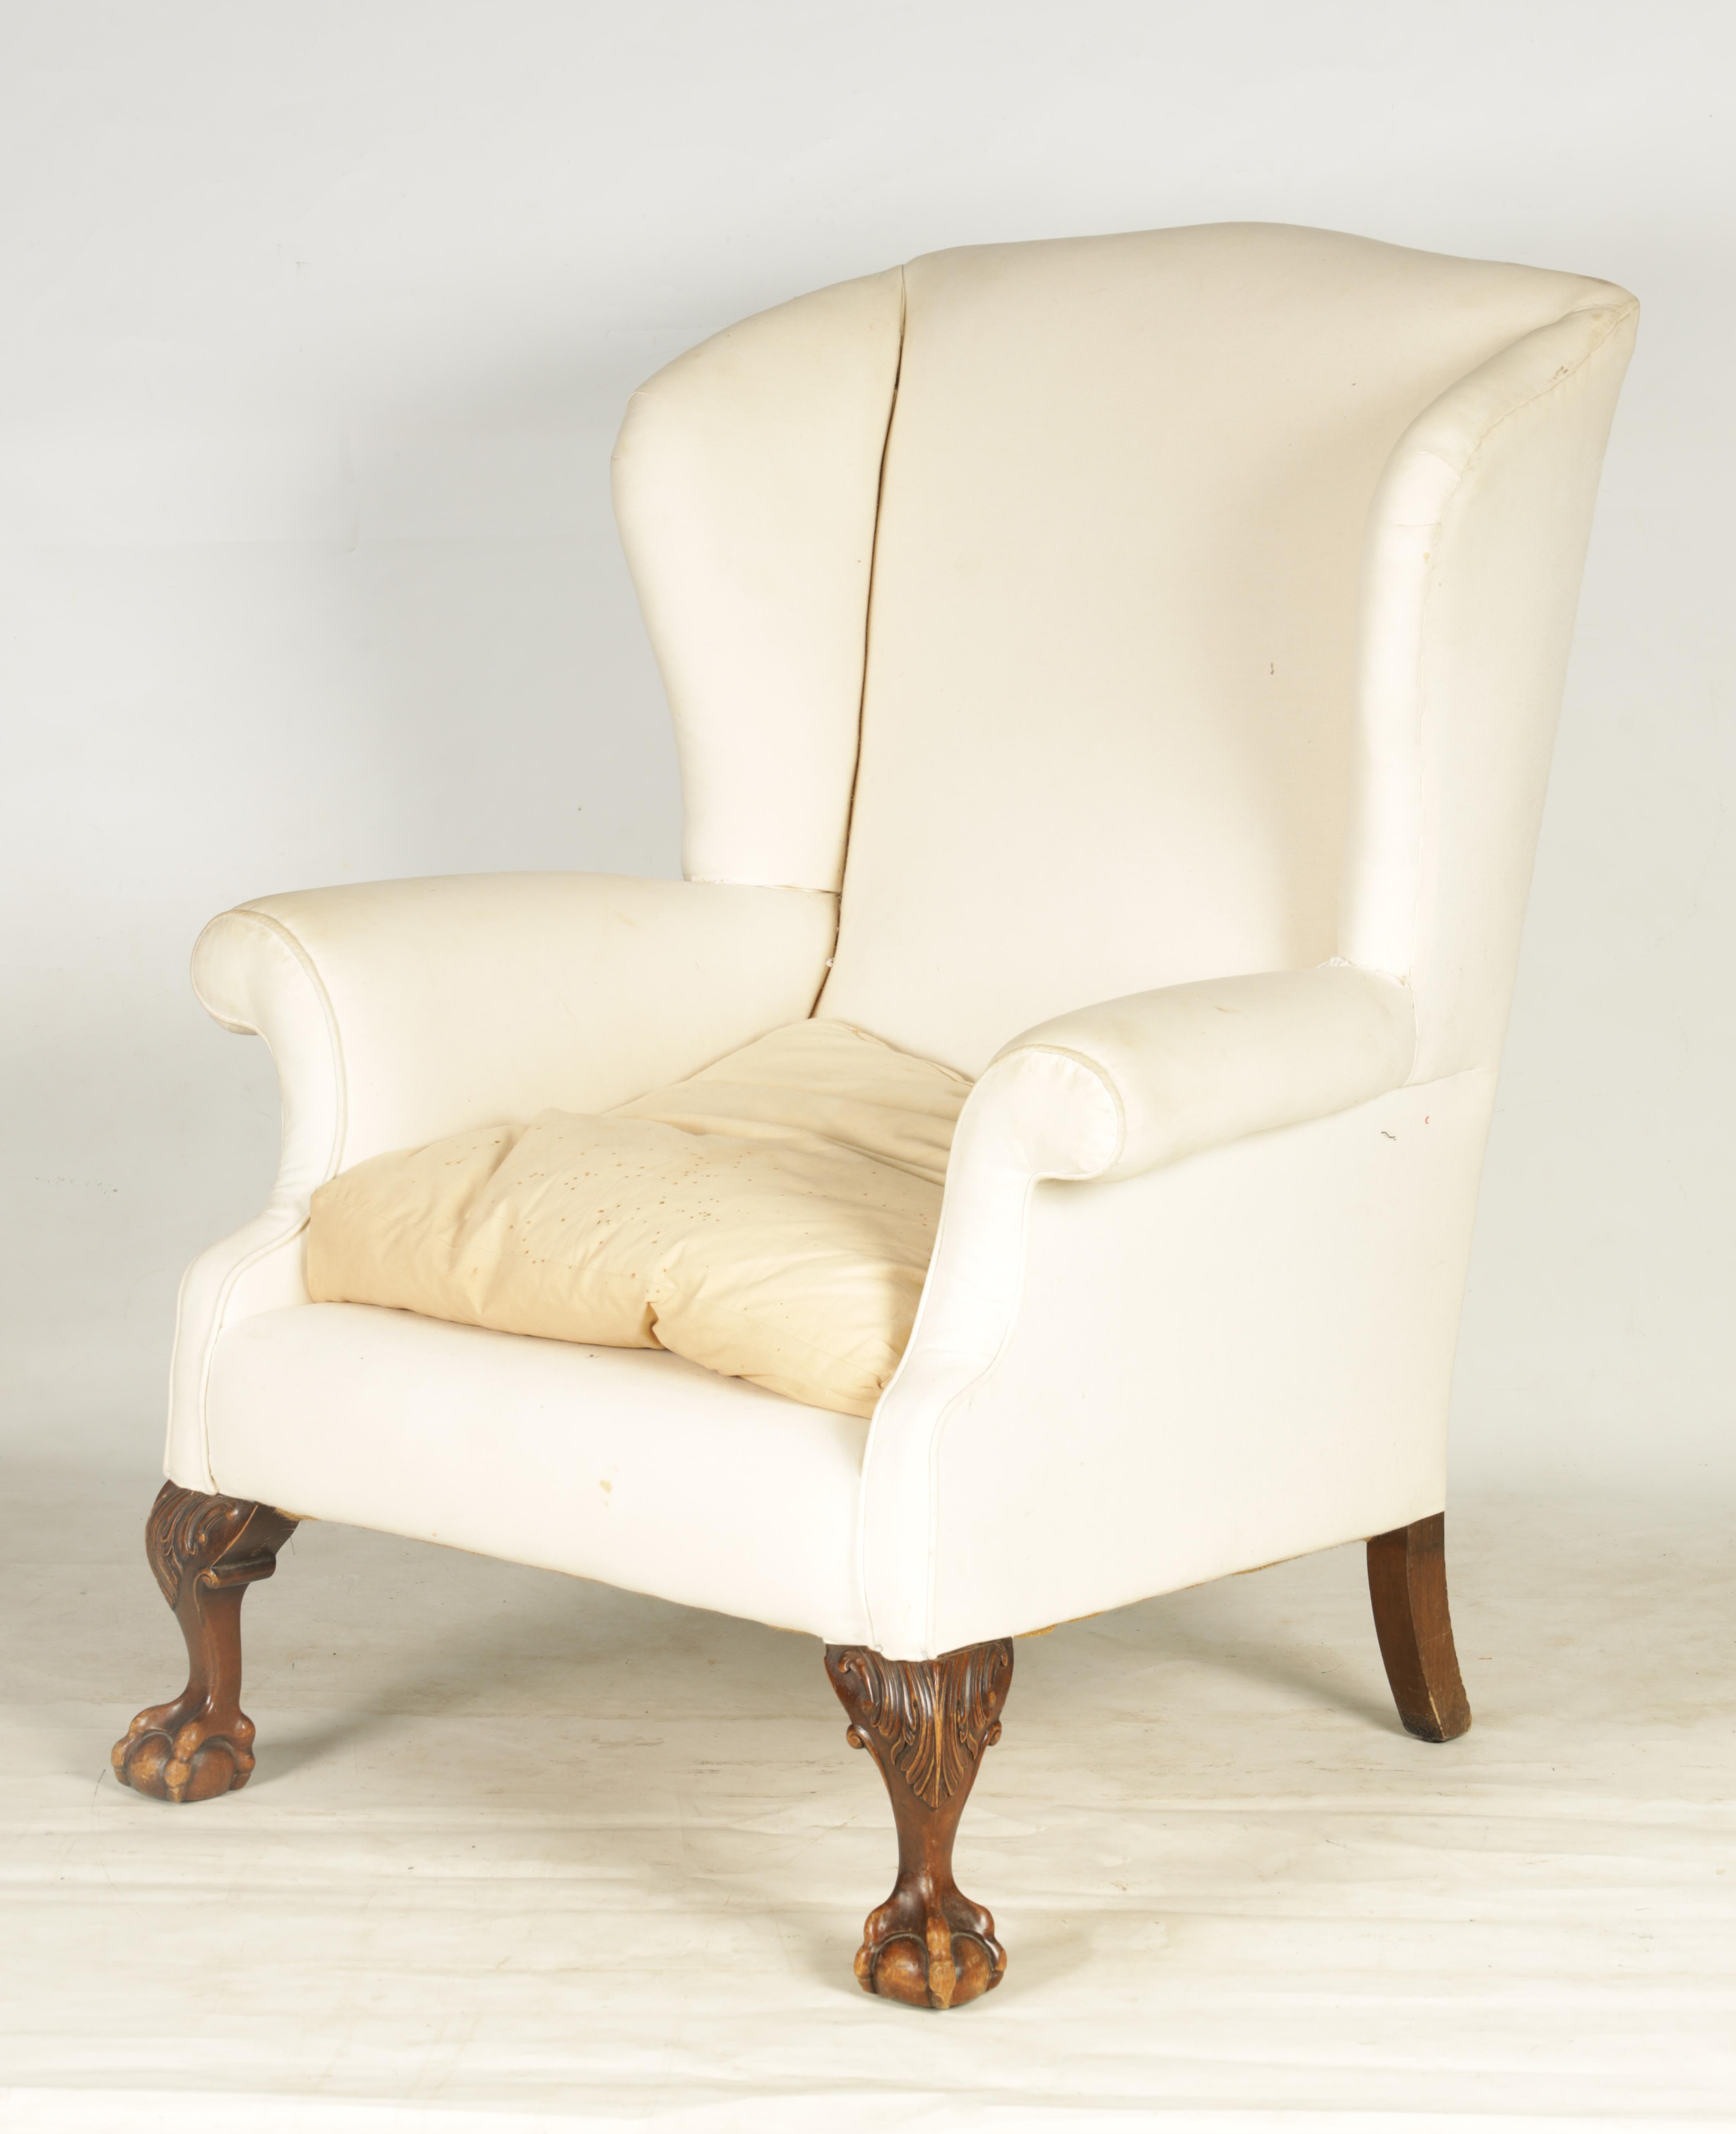 A LATE 19TH CENTURY GEORGE I STYLE WINGBACK UPHOLSTERED ARMCHAIR with mahogany leaf carved